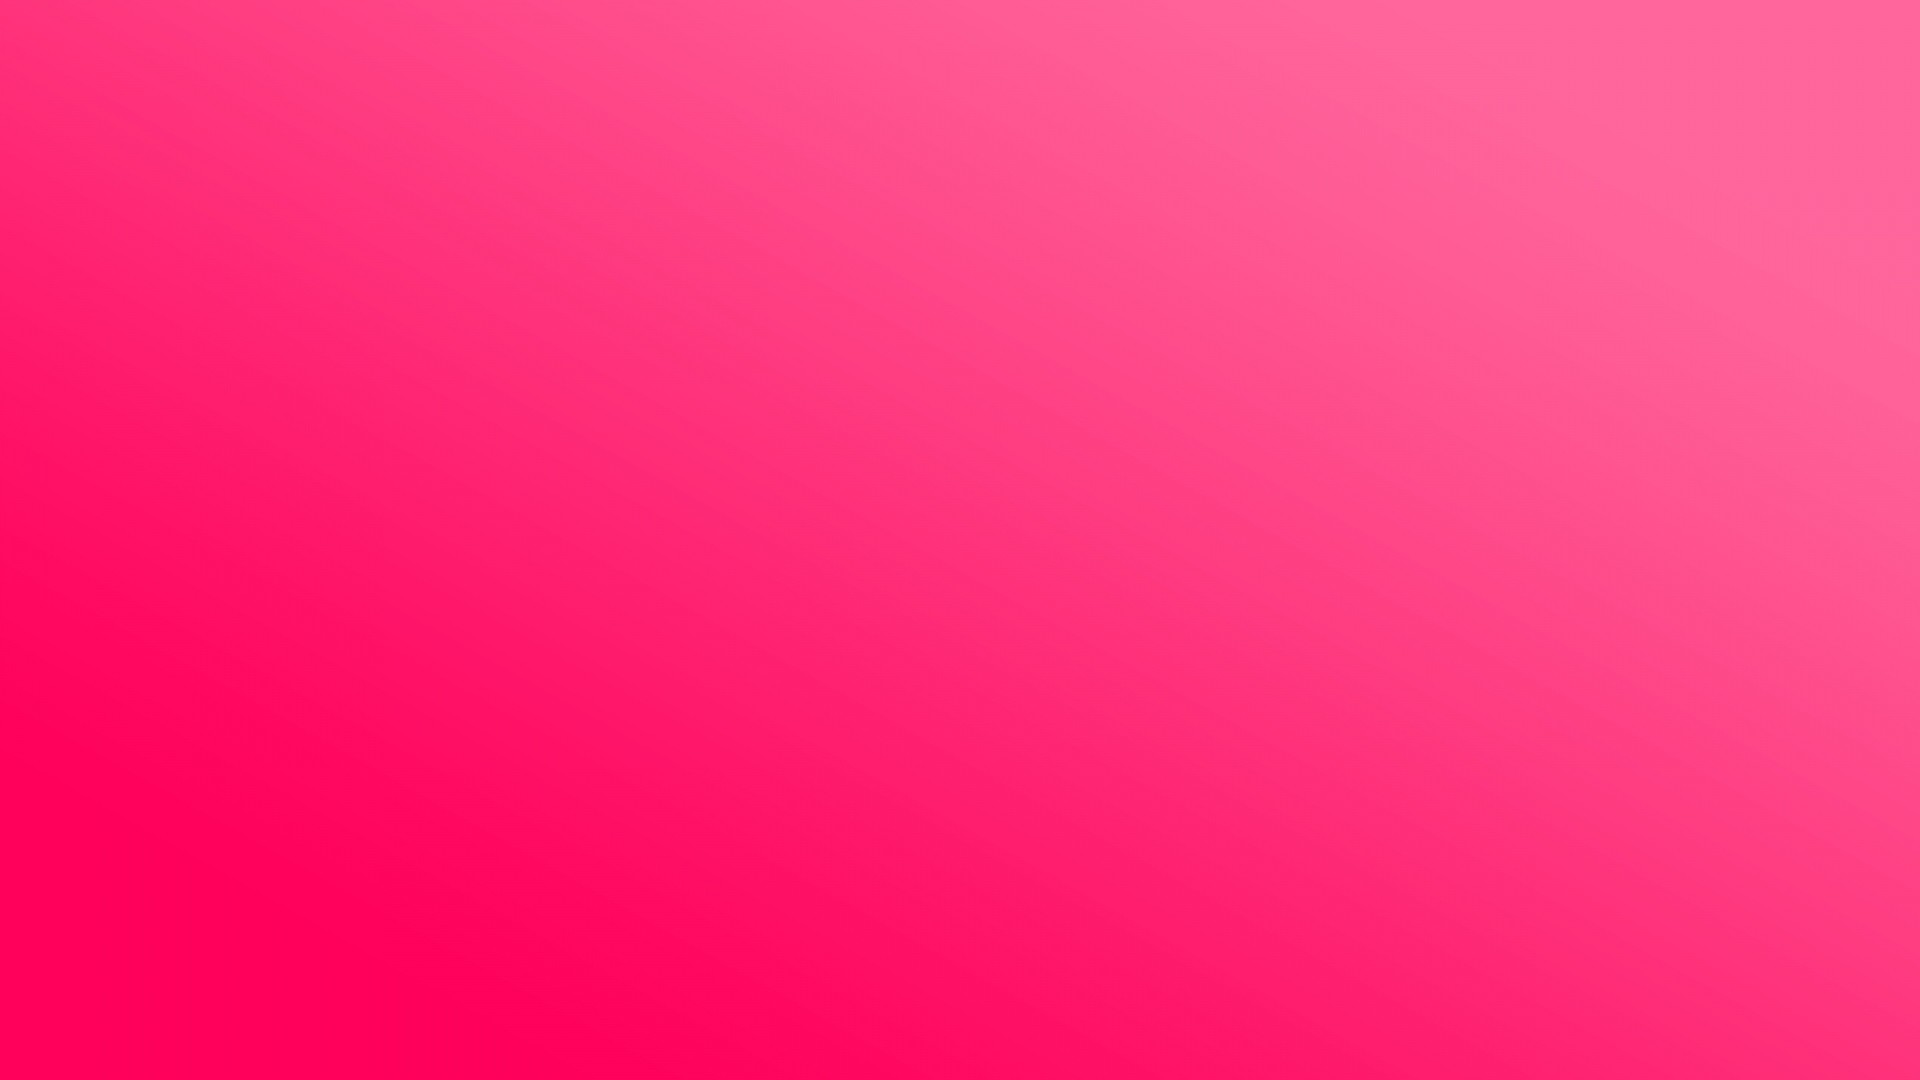 Wallpaper pink, solid, color, light, bright